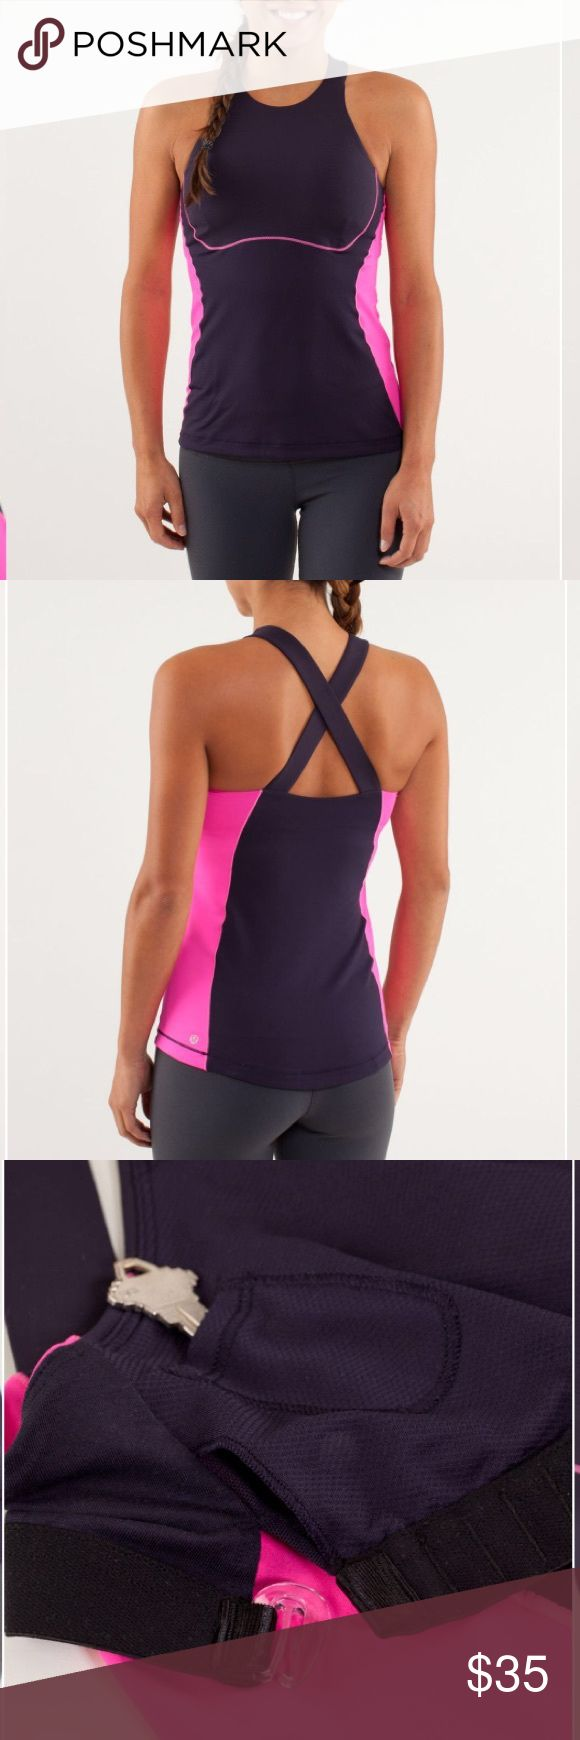 (Lululemon) Spin It To Win It Navy and Pink Tank Lululemon Spin It To Win It - Black Swan and Raspberry Glo Light. Size 4 customize the built-in bra for a personalized fit wide, crossover straps lay comfortably flat on your shoulders stash your key in the hidden bust pocket the silky-smooth Power Luxtreme fabric is quick drying and moisture wicking to help keep you cool and dry anti-stink Micro Diamond Mesh placed in high-sweat areas helps keep you cool rubber grip at the hem helps keep your…